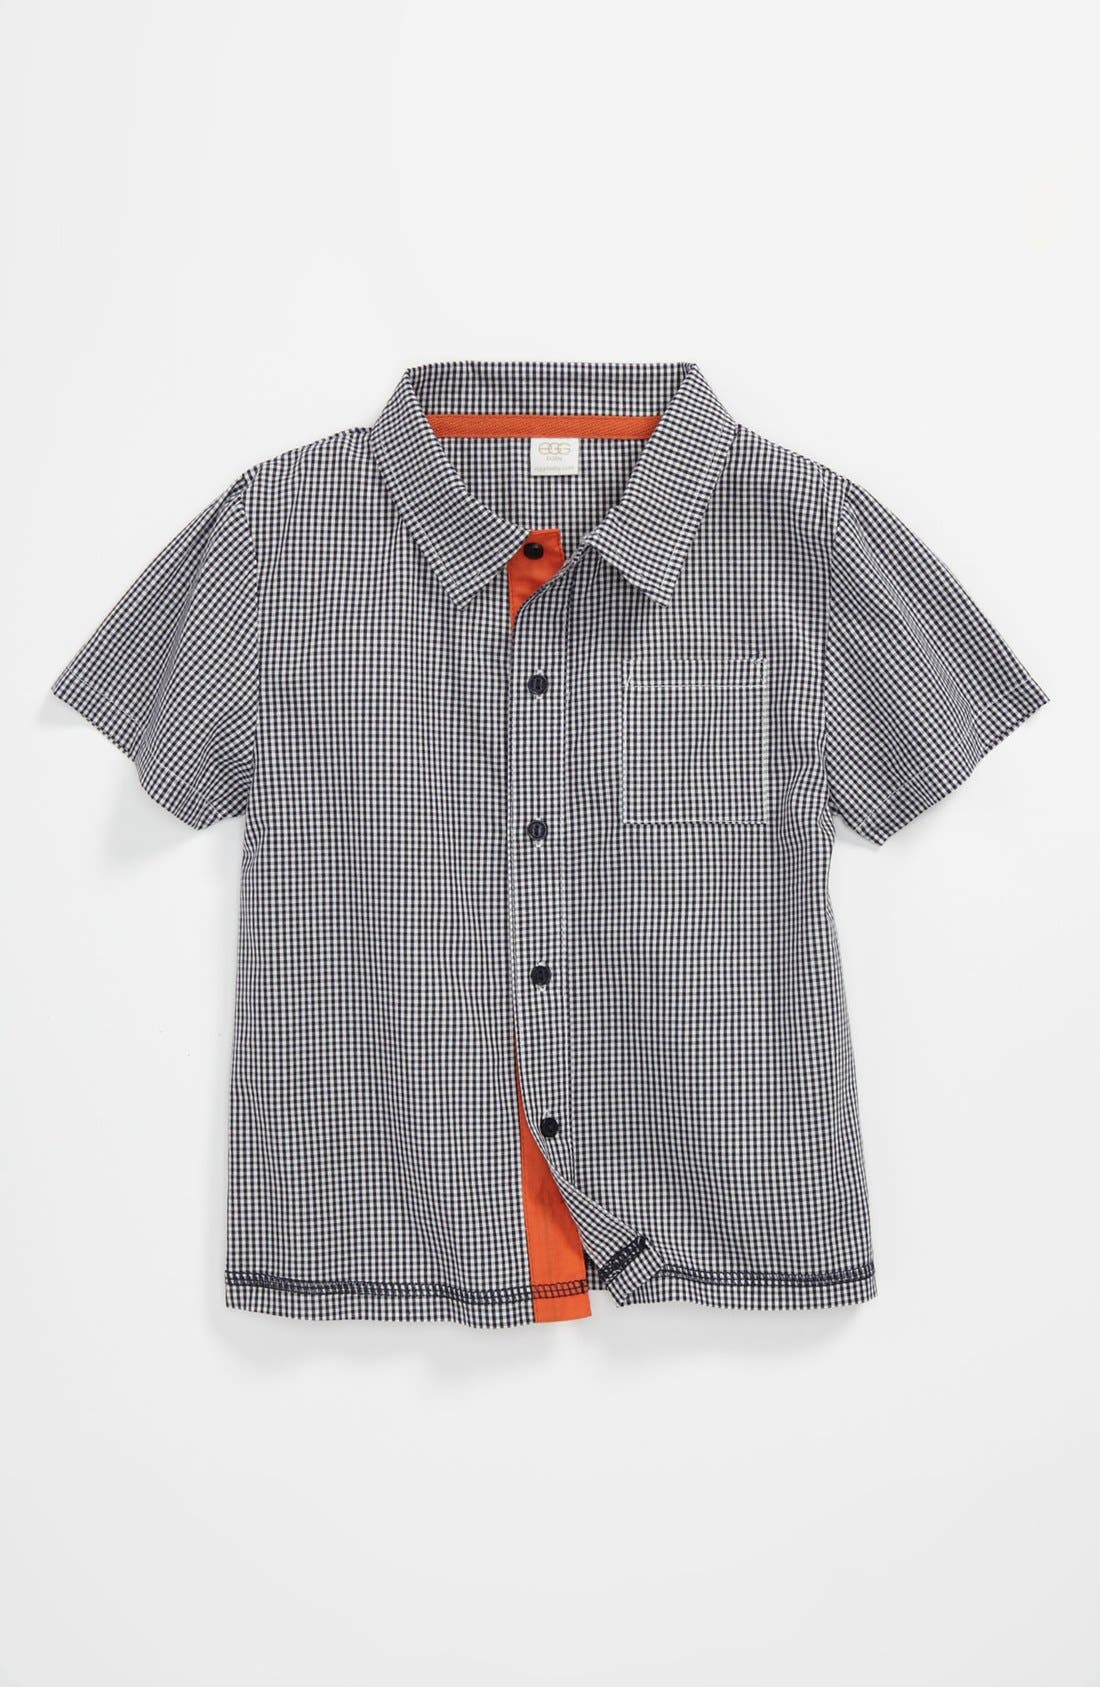 Main Image - egg by susan lazar Woven Shirt (Baby)